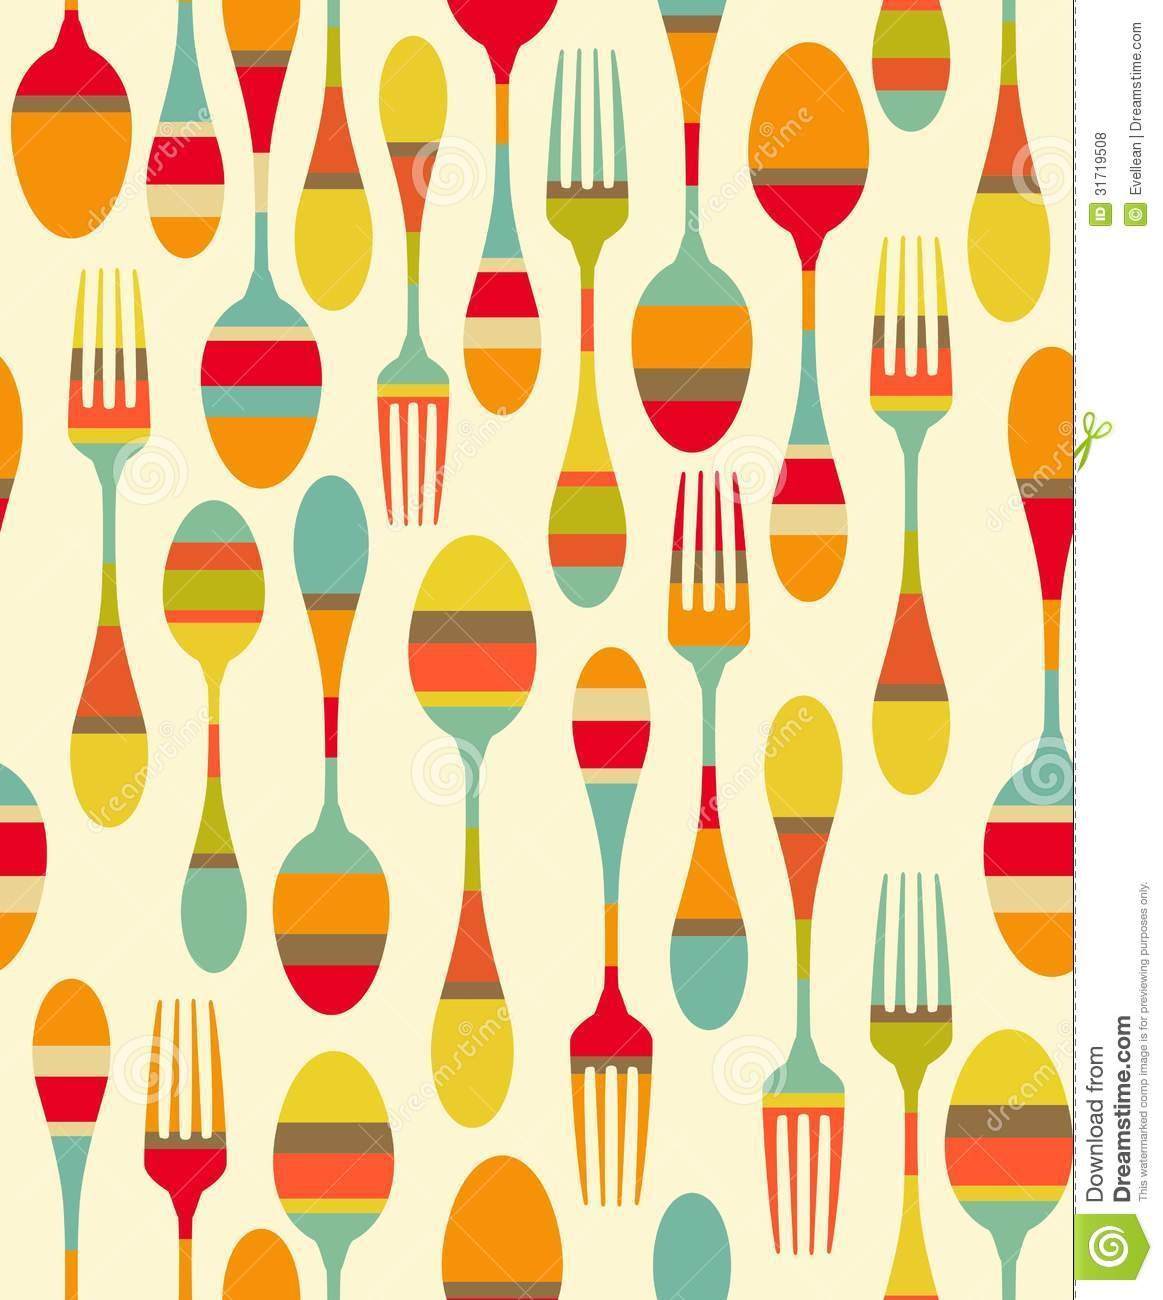 Kitchen Utensils Background kitchen utensils pattern royalty free stock photos - image: 31719508